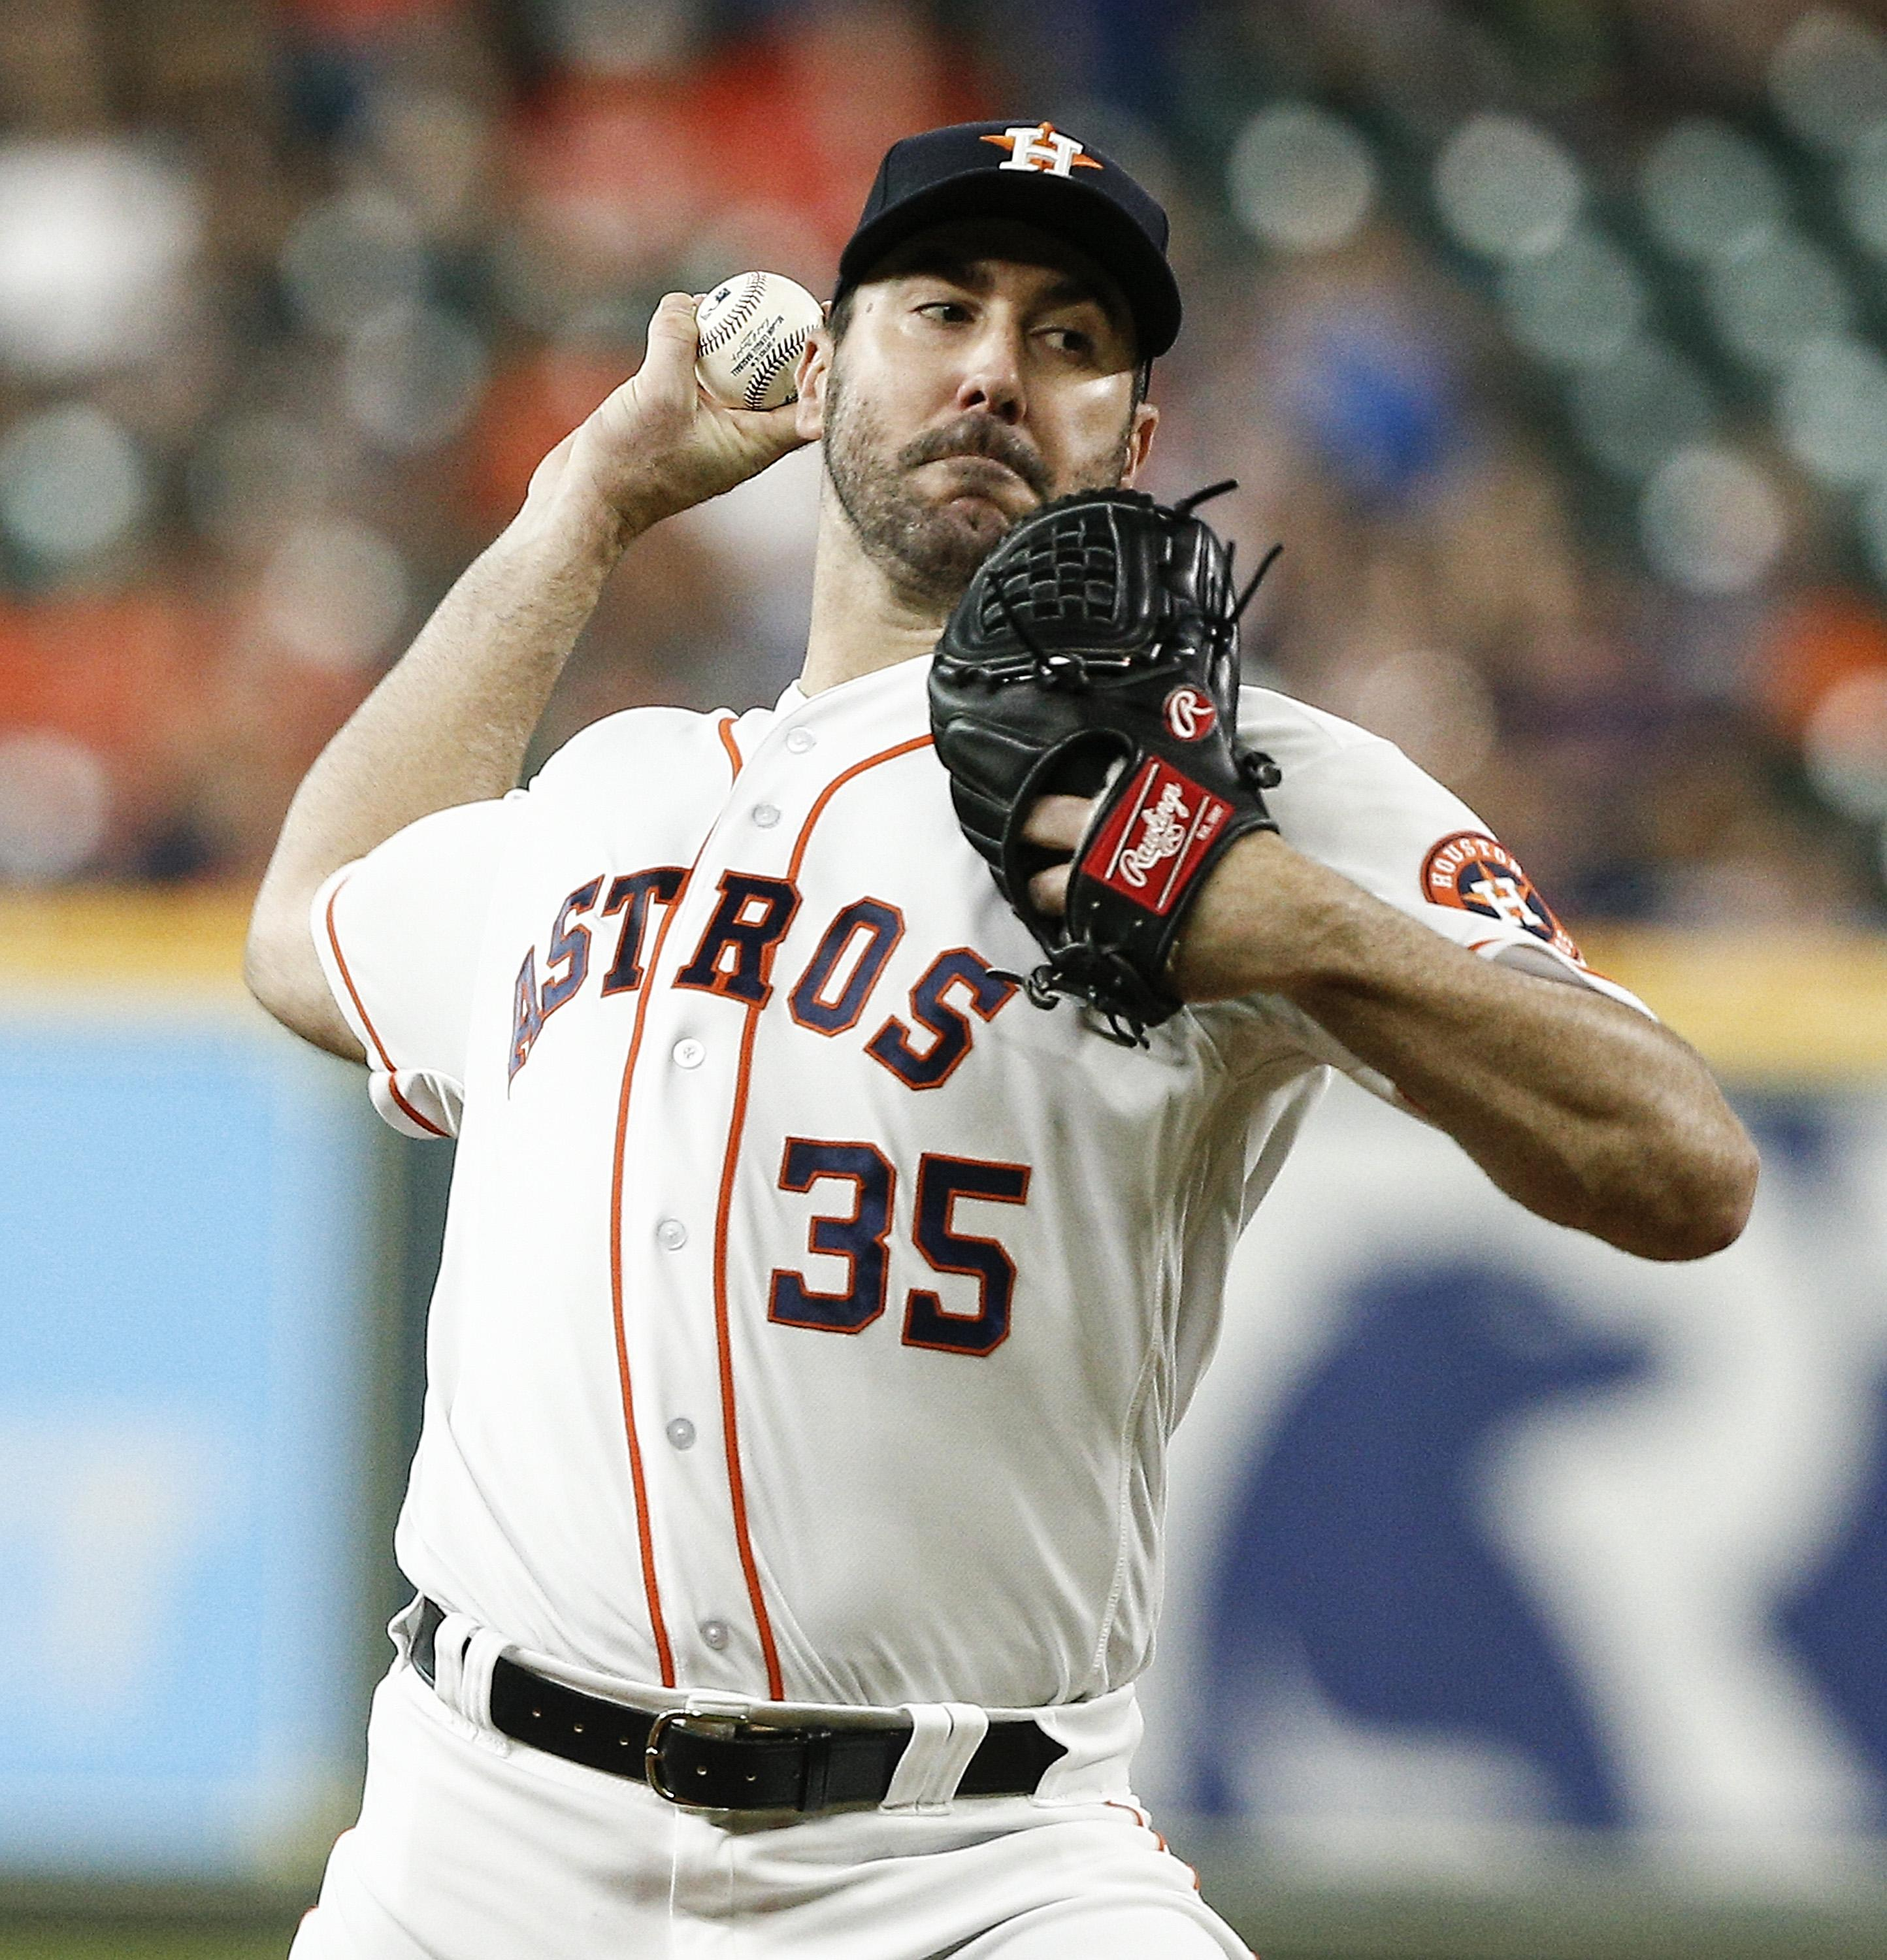 He made his name as the ace pitcher for the Detroit Tigers before being bought in 2017 by the Houston Astros